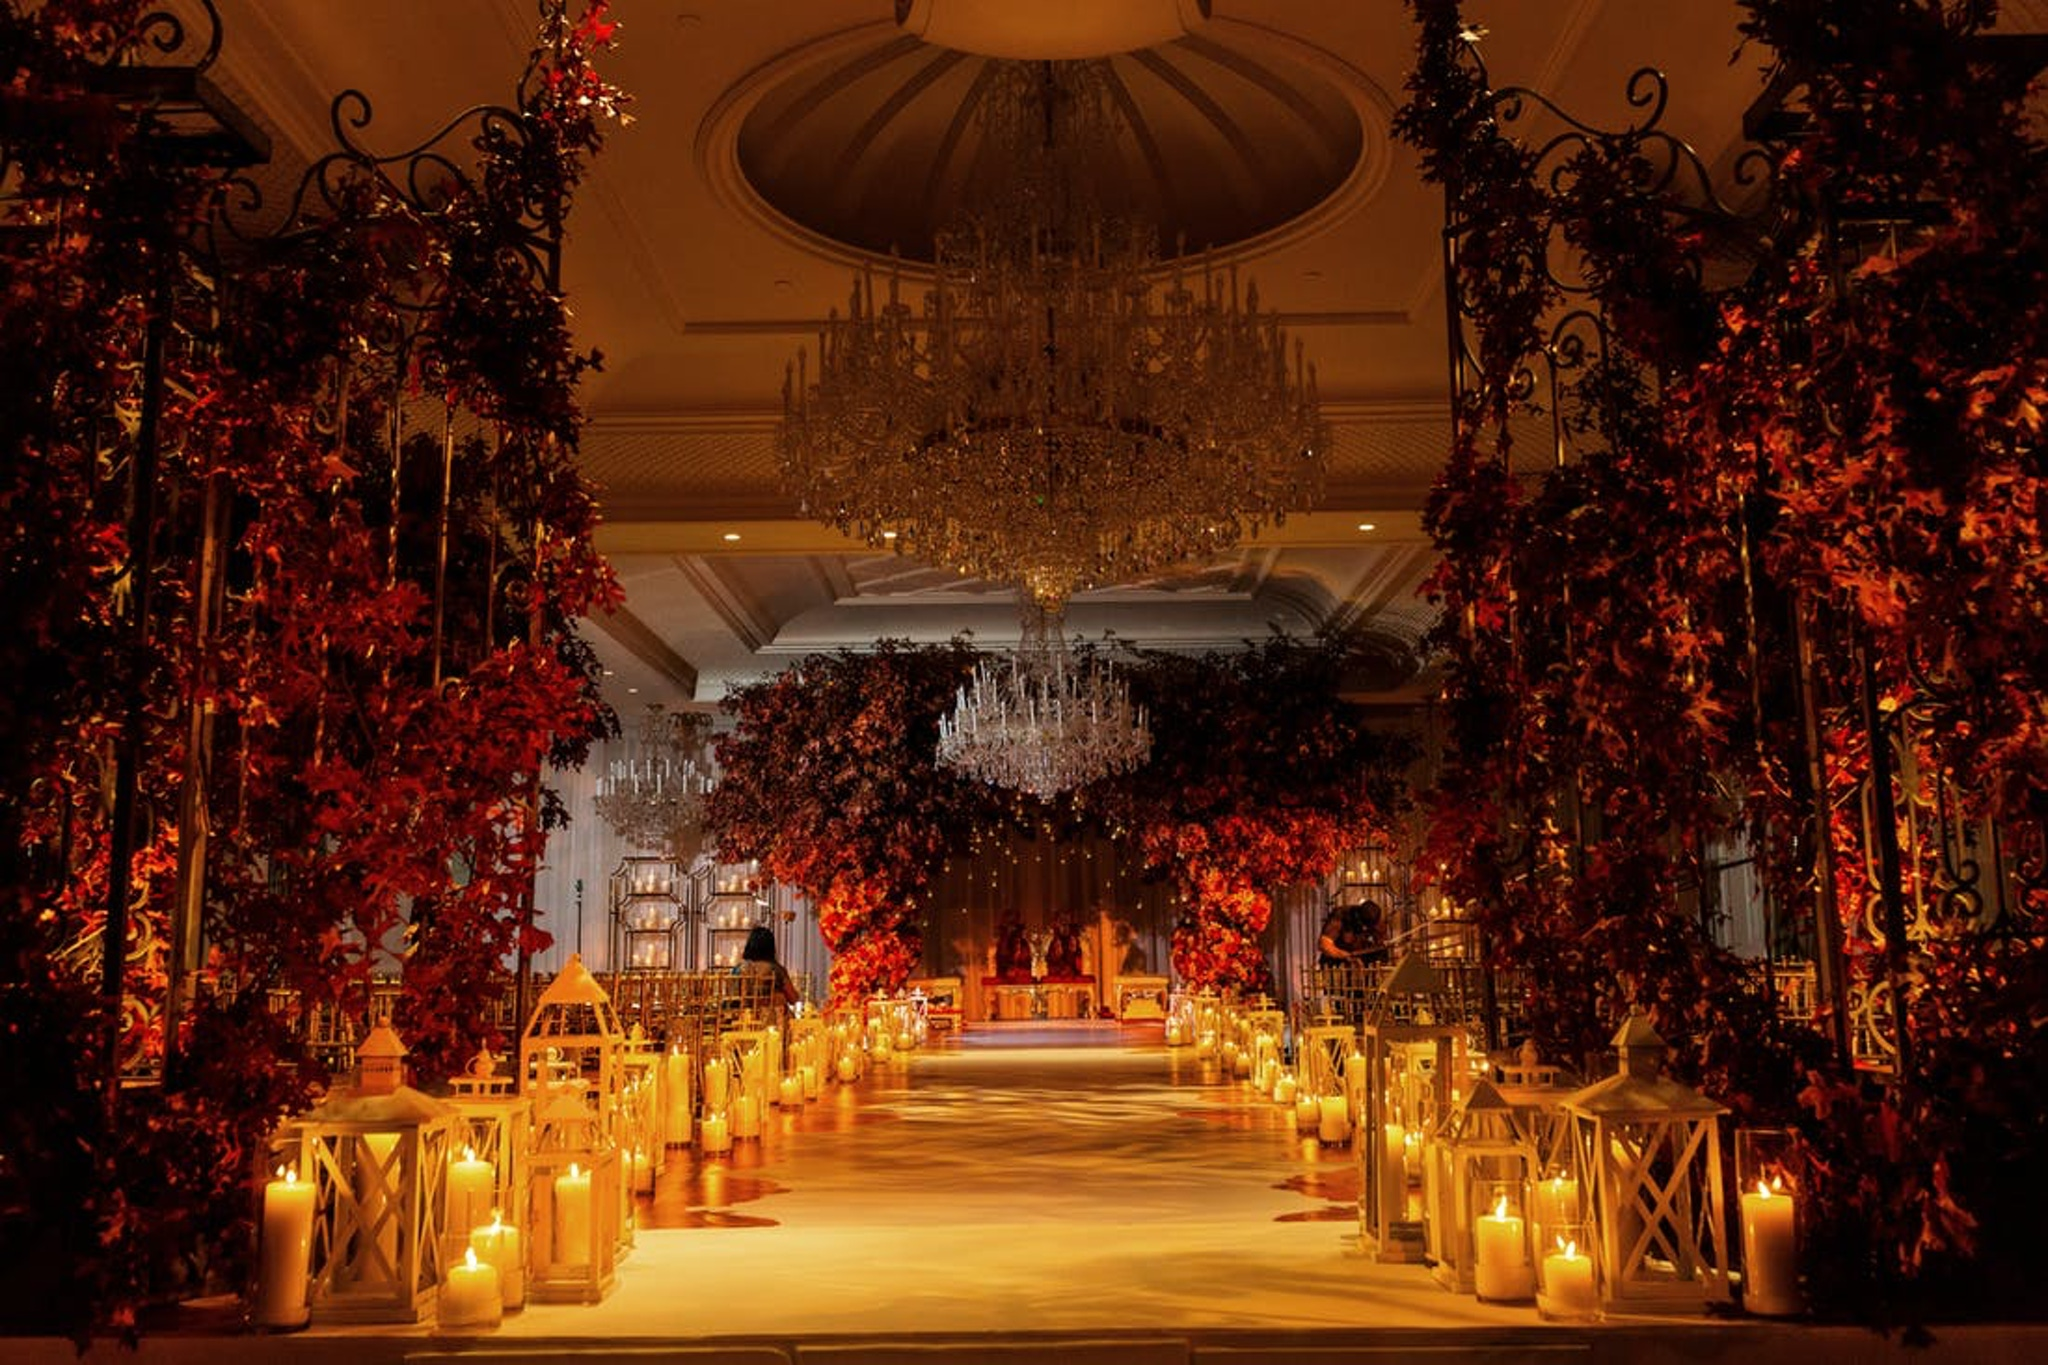 luxurious orange wedding ceremony aisle with candles and orange flowers